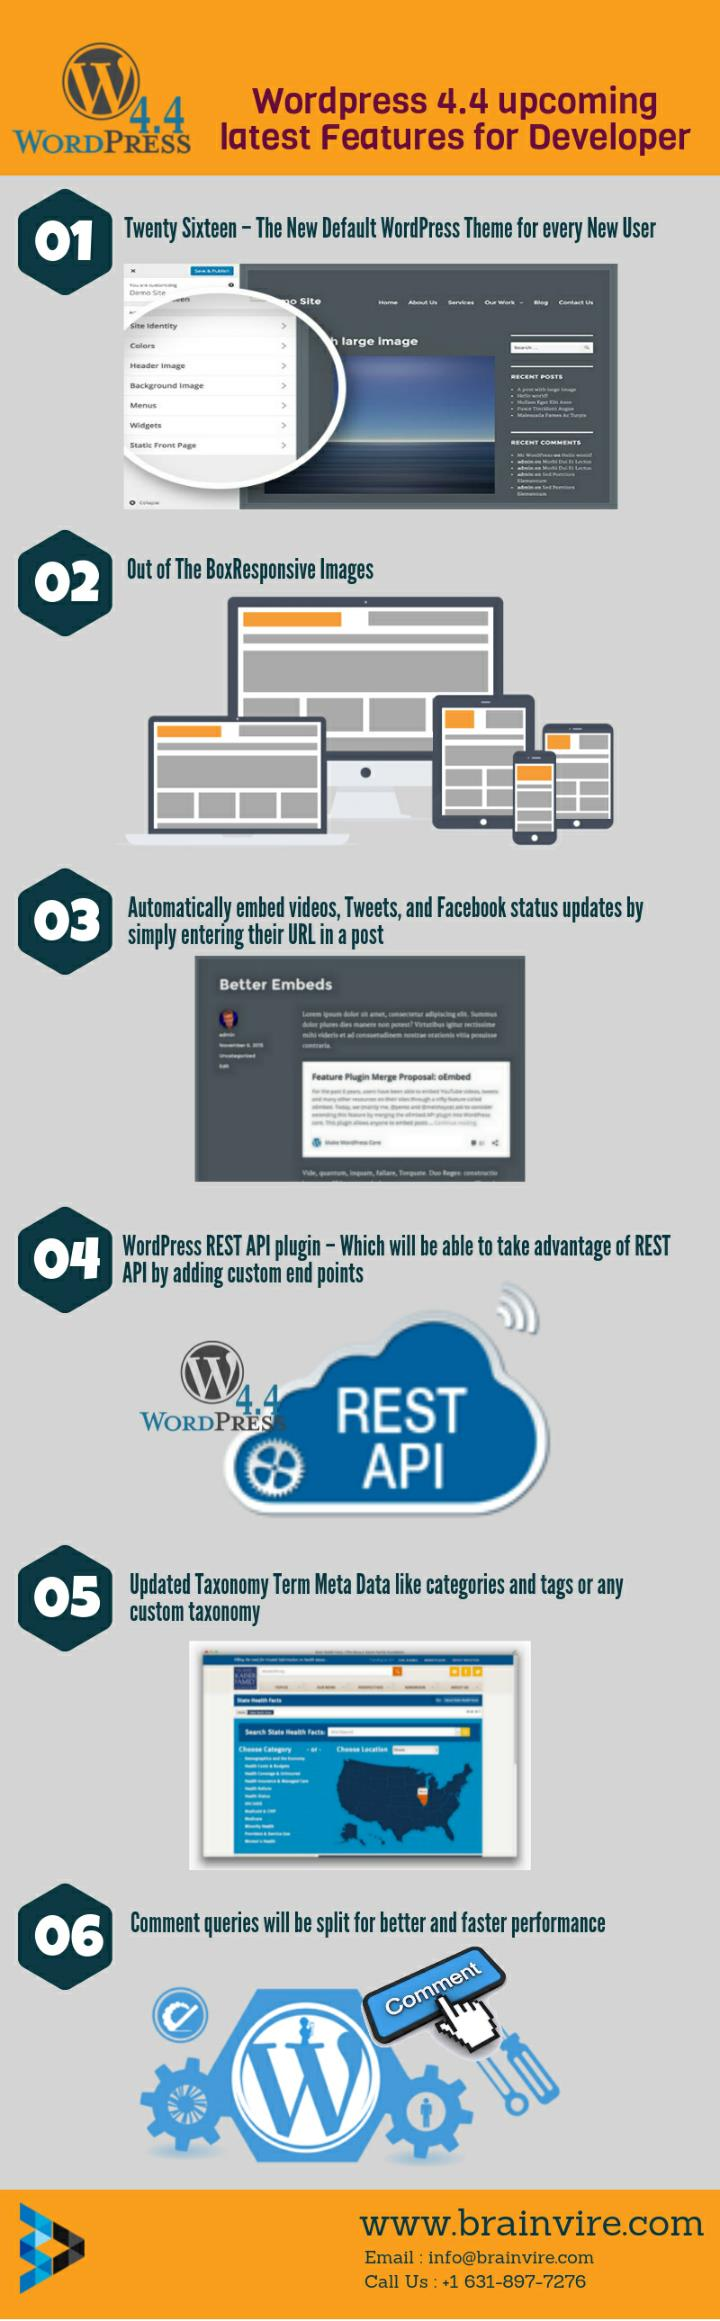 Wordpress 4 4 upcoming latest features for website developer